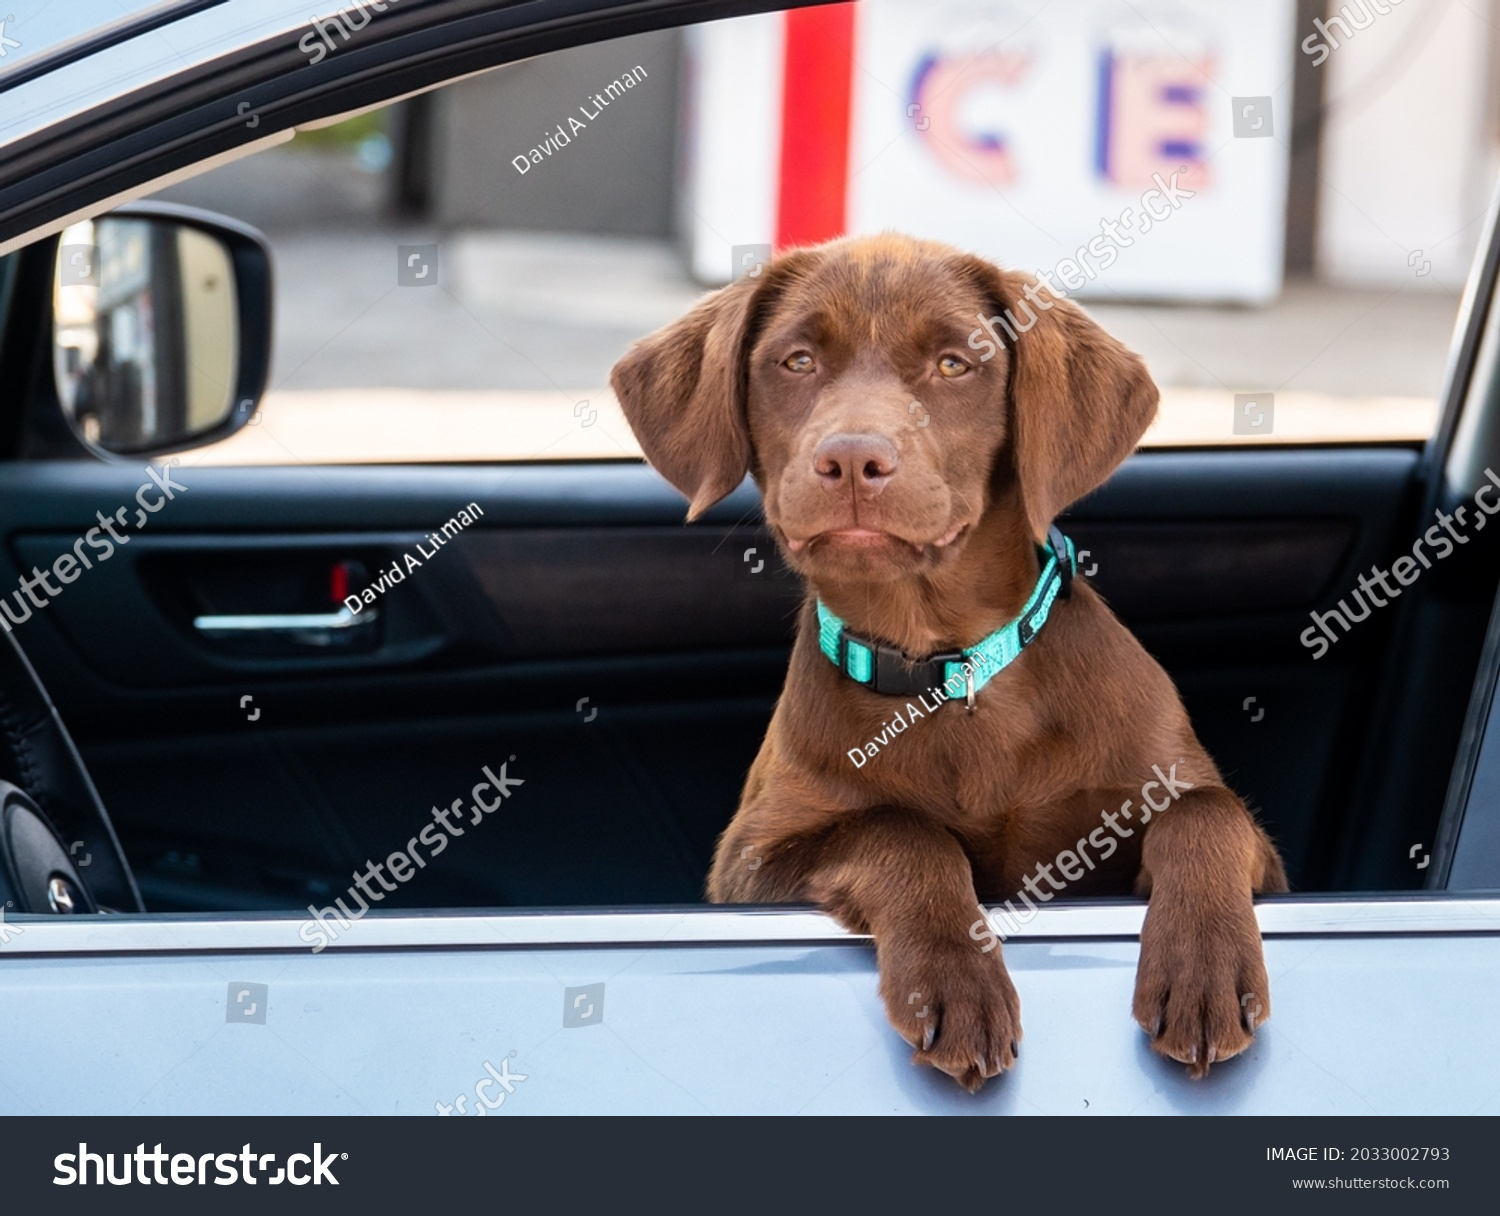 A patient chocolate Labrador Retriever puppy waits in the car.